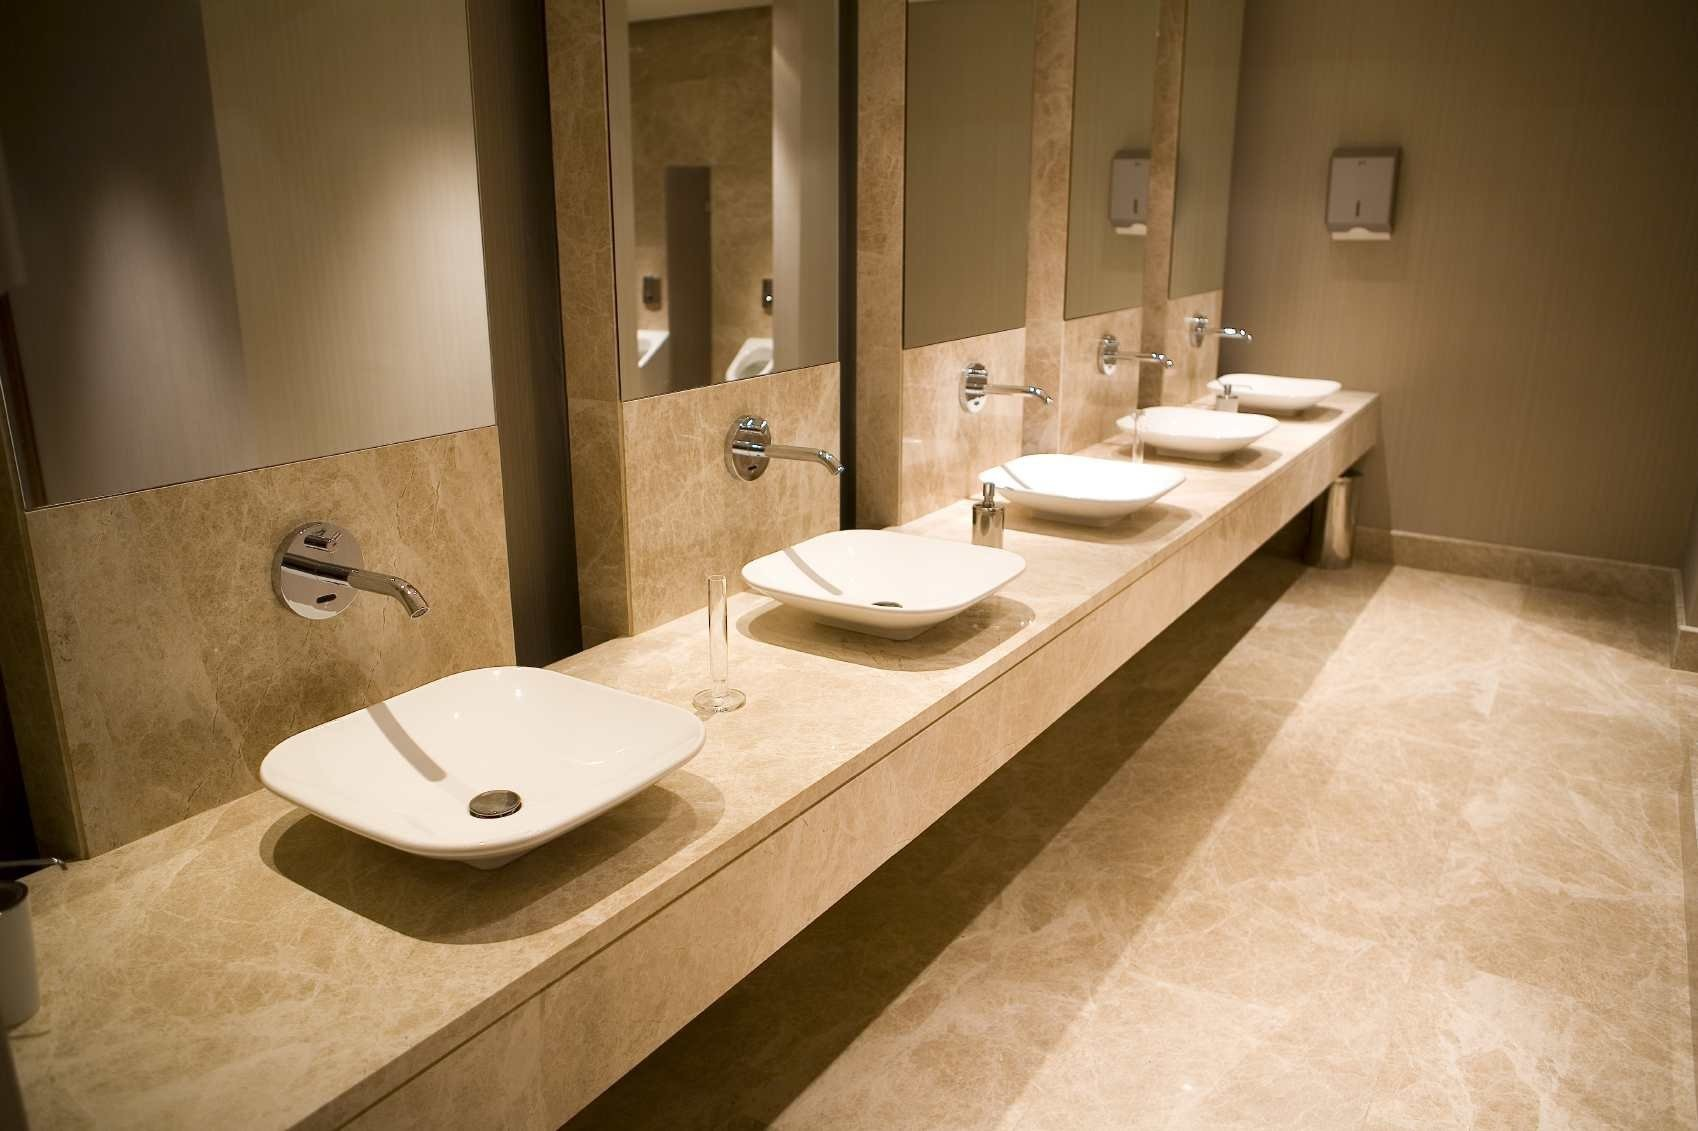 Commercial Bathroom Tile Commercial Flooring For The Bathroom South Florida